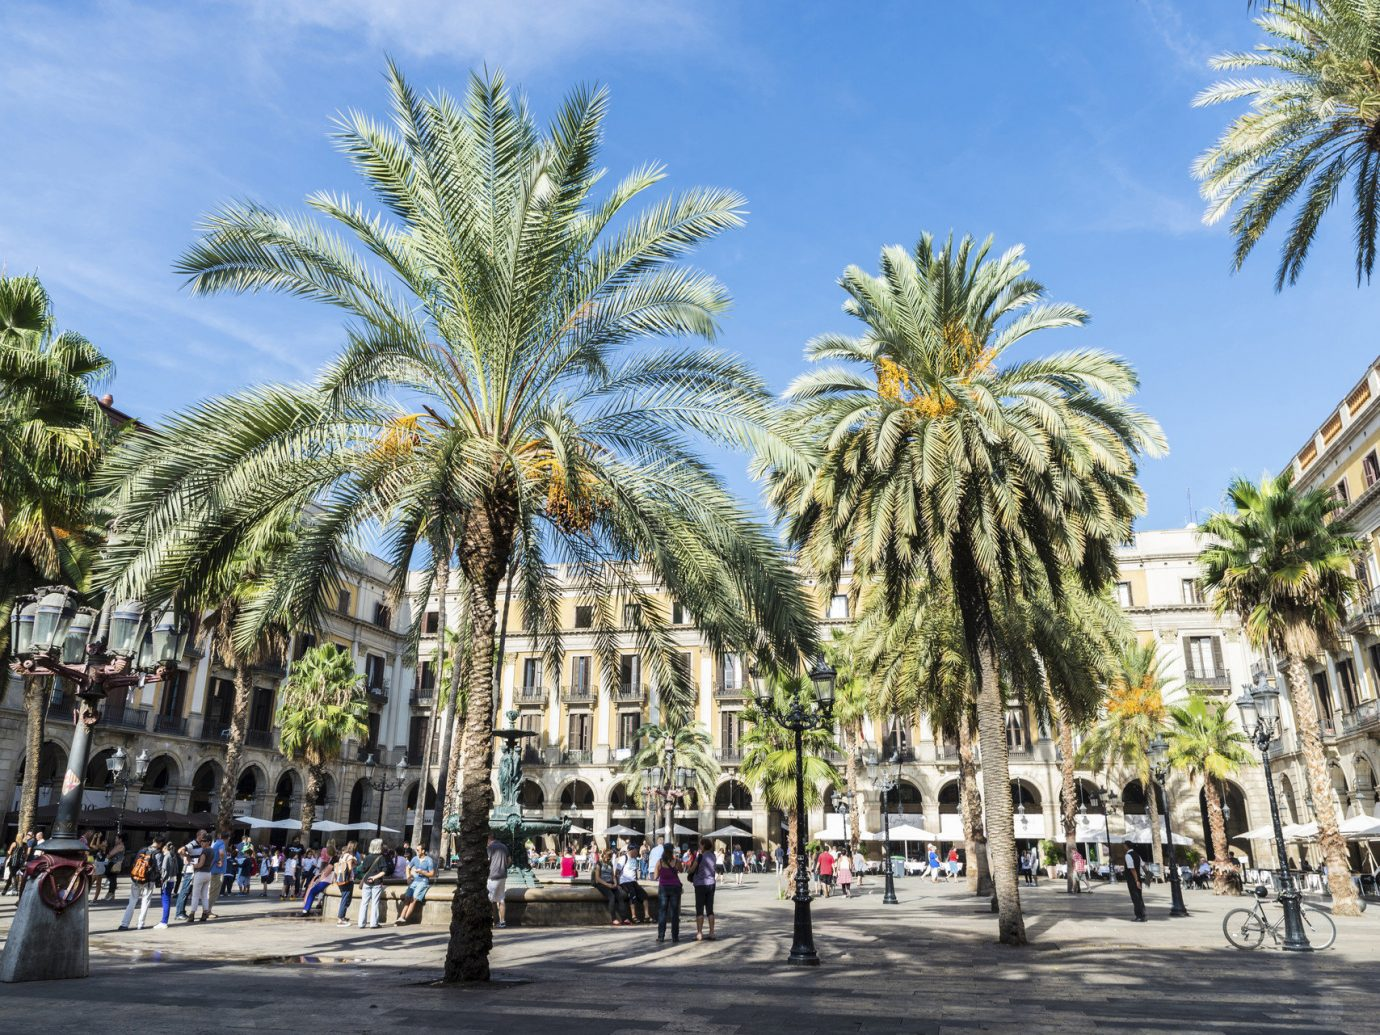 News Trip Ideas tree outdoor road sky plant palm palm family street botany plaza vacation arecales woody plant land plant date palm tourism borassus flabellifer walkway town square park flower flowering plant lined square Resort